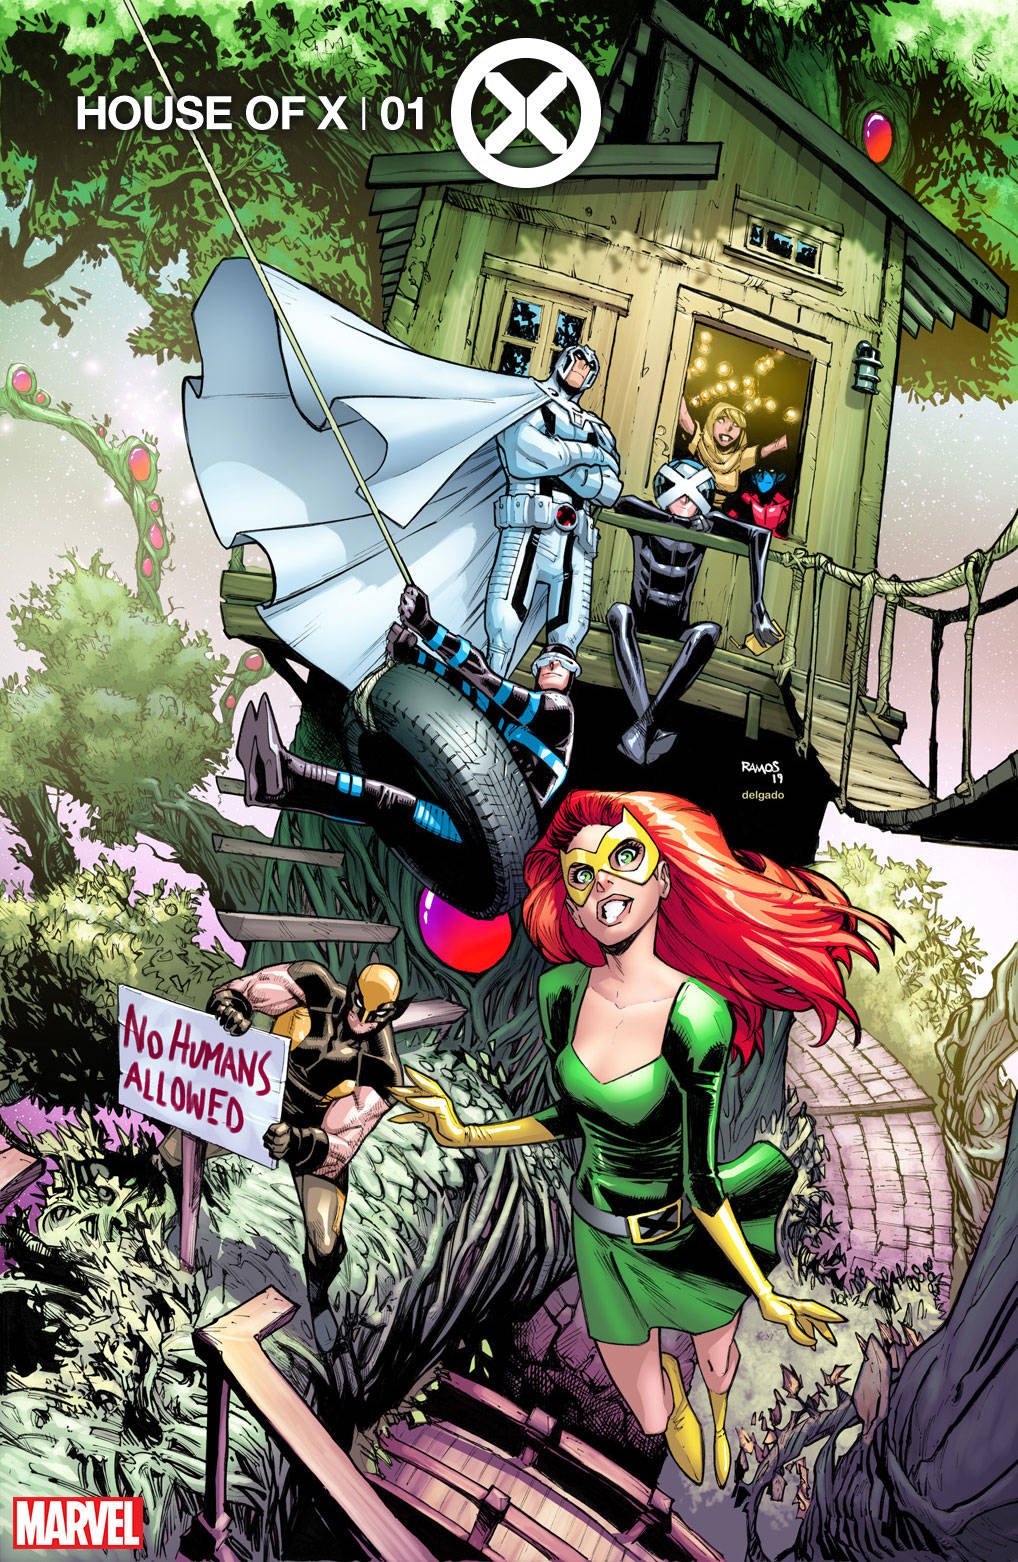 HOUSE OF X #1 (OF 6) PARTY VARIANT 07/24/19 FOC 07/01/19